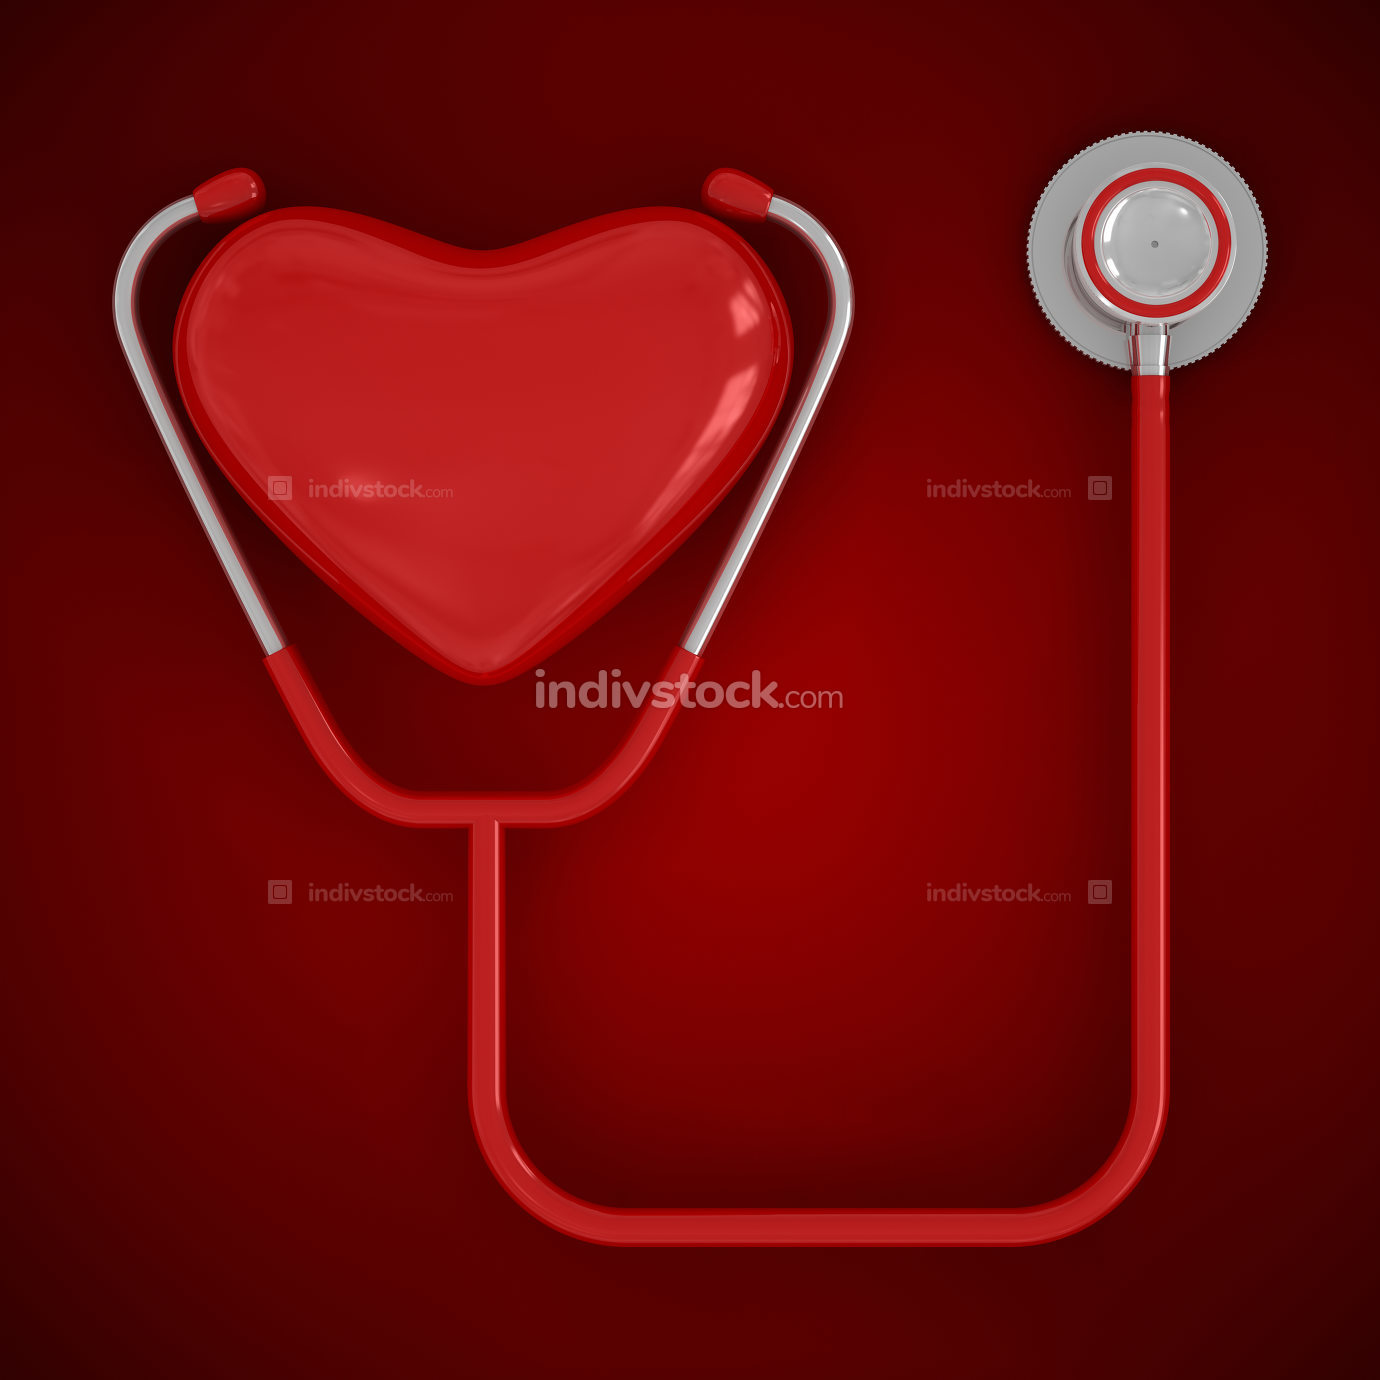 Heart and stethoscope 3d rendered image